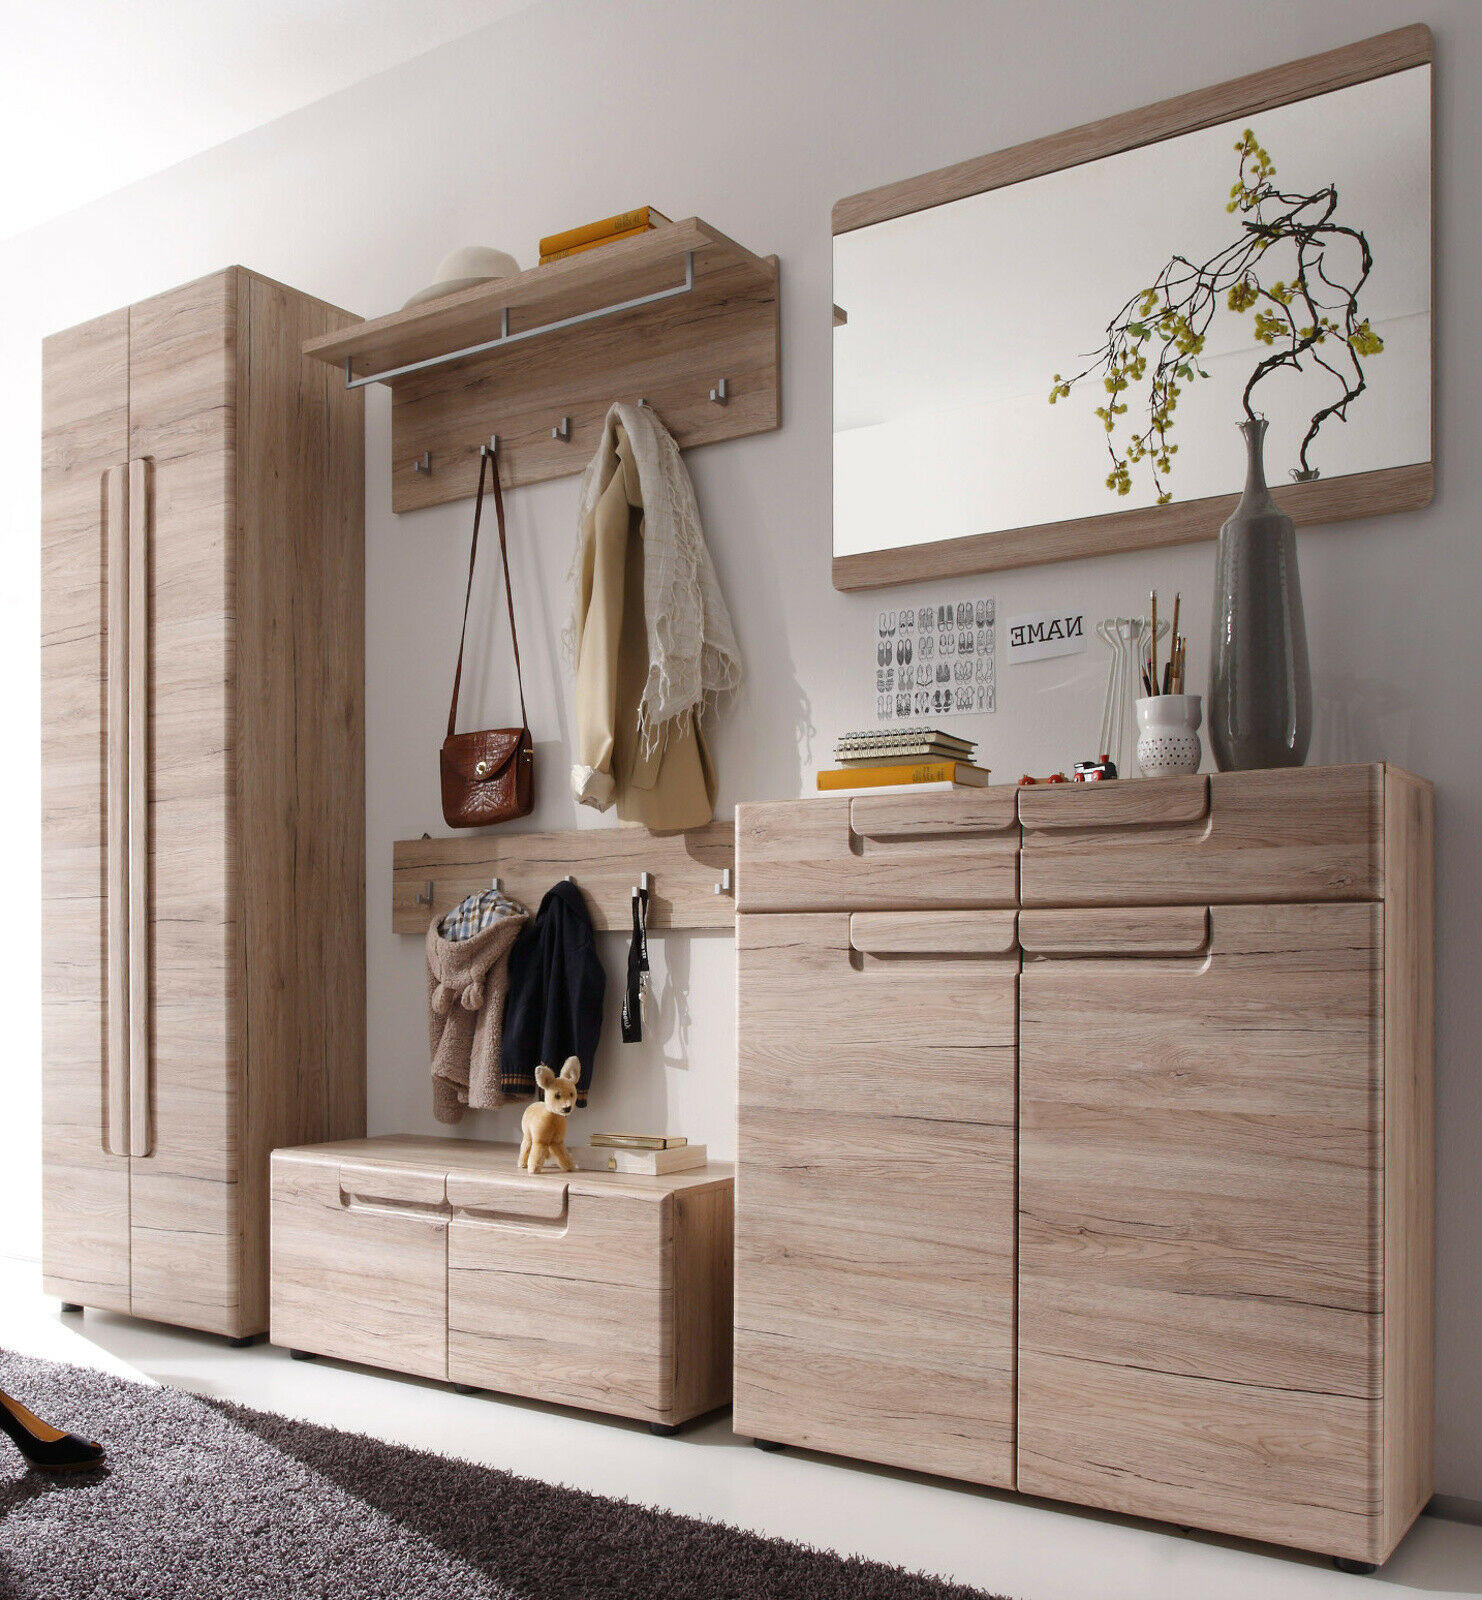 garderoben set flurgarderobe eiche san remo garderobenset. Black Bedroom Furniture Sets. Home Design Ideas